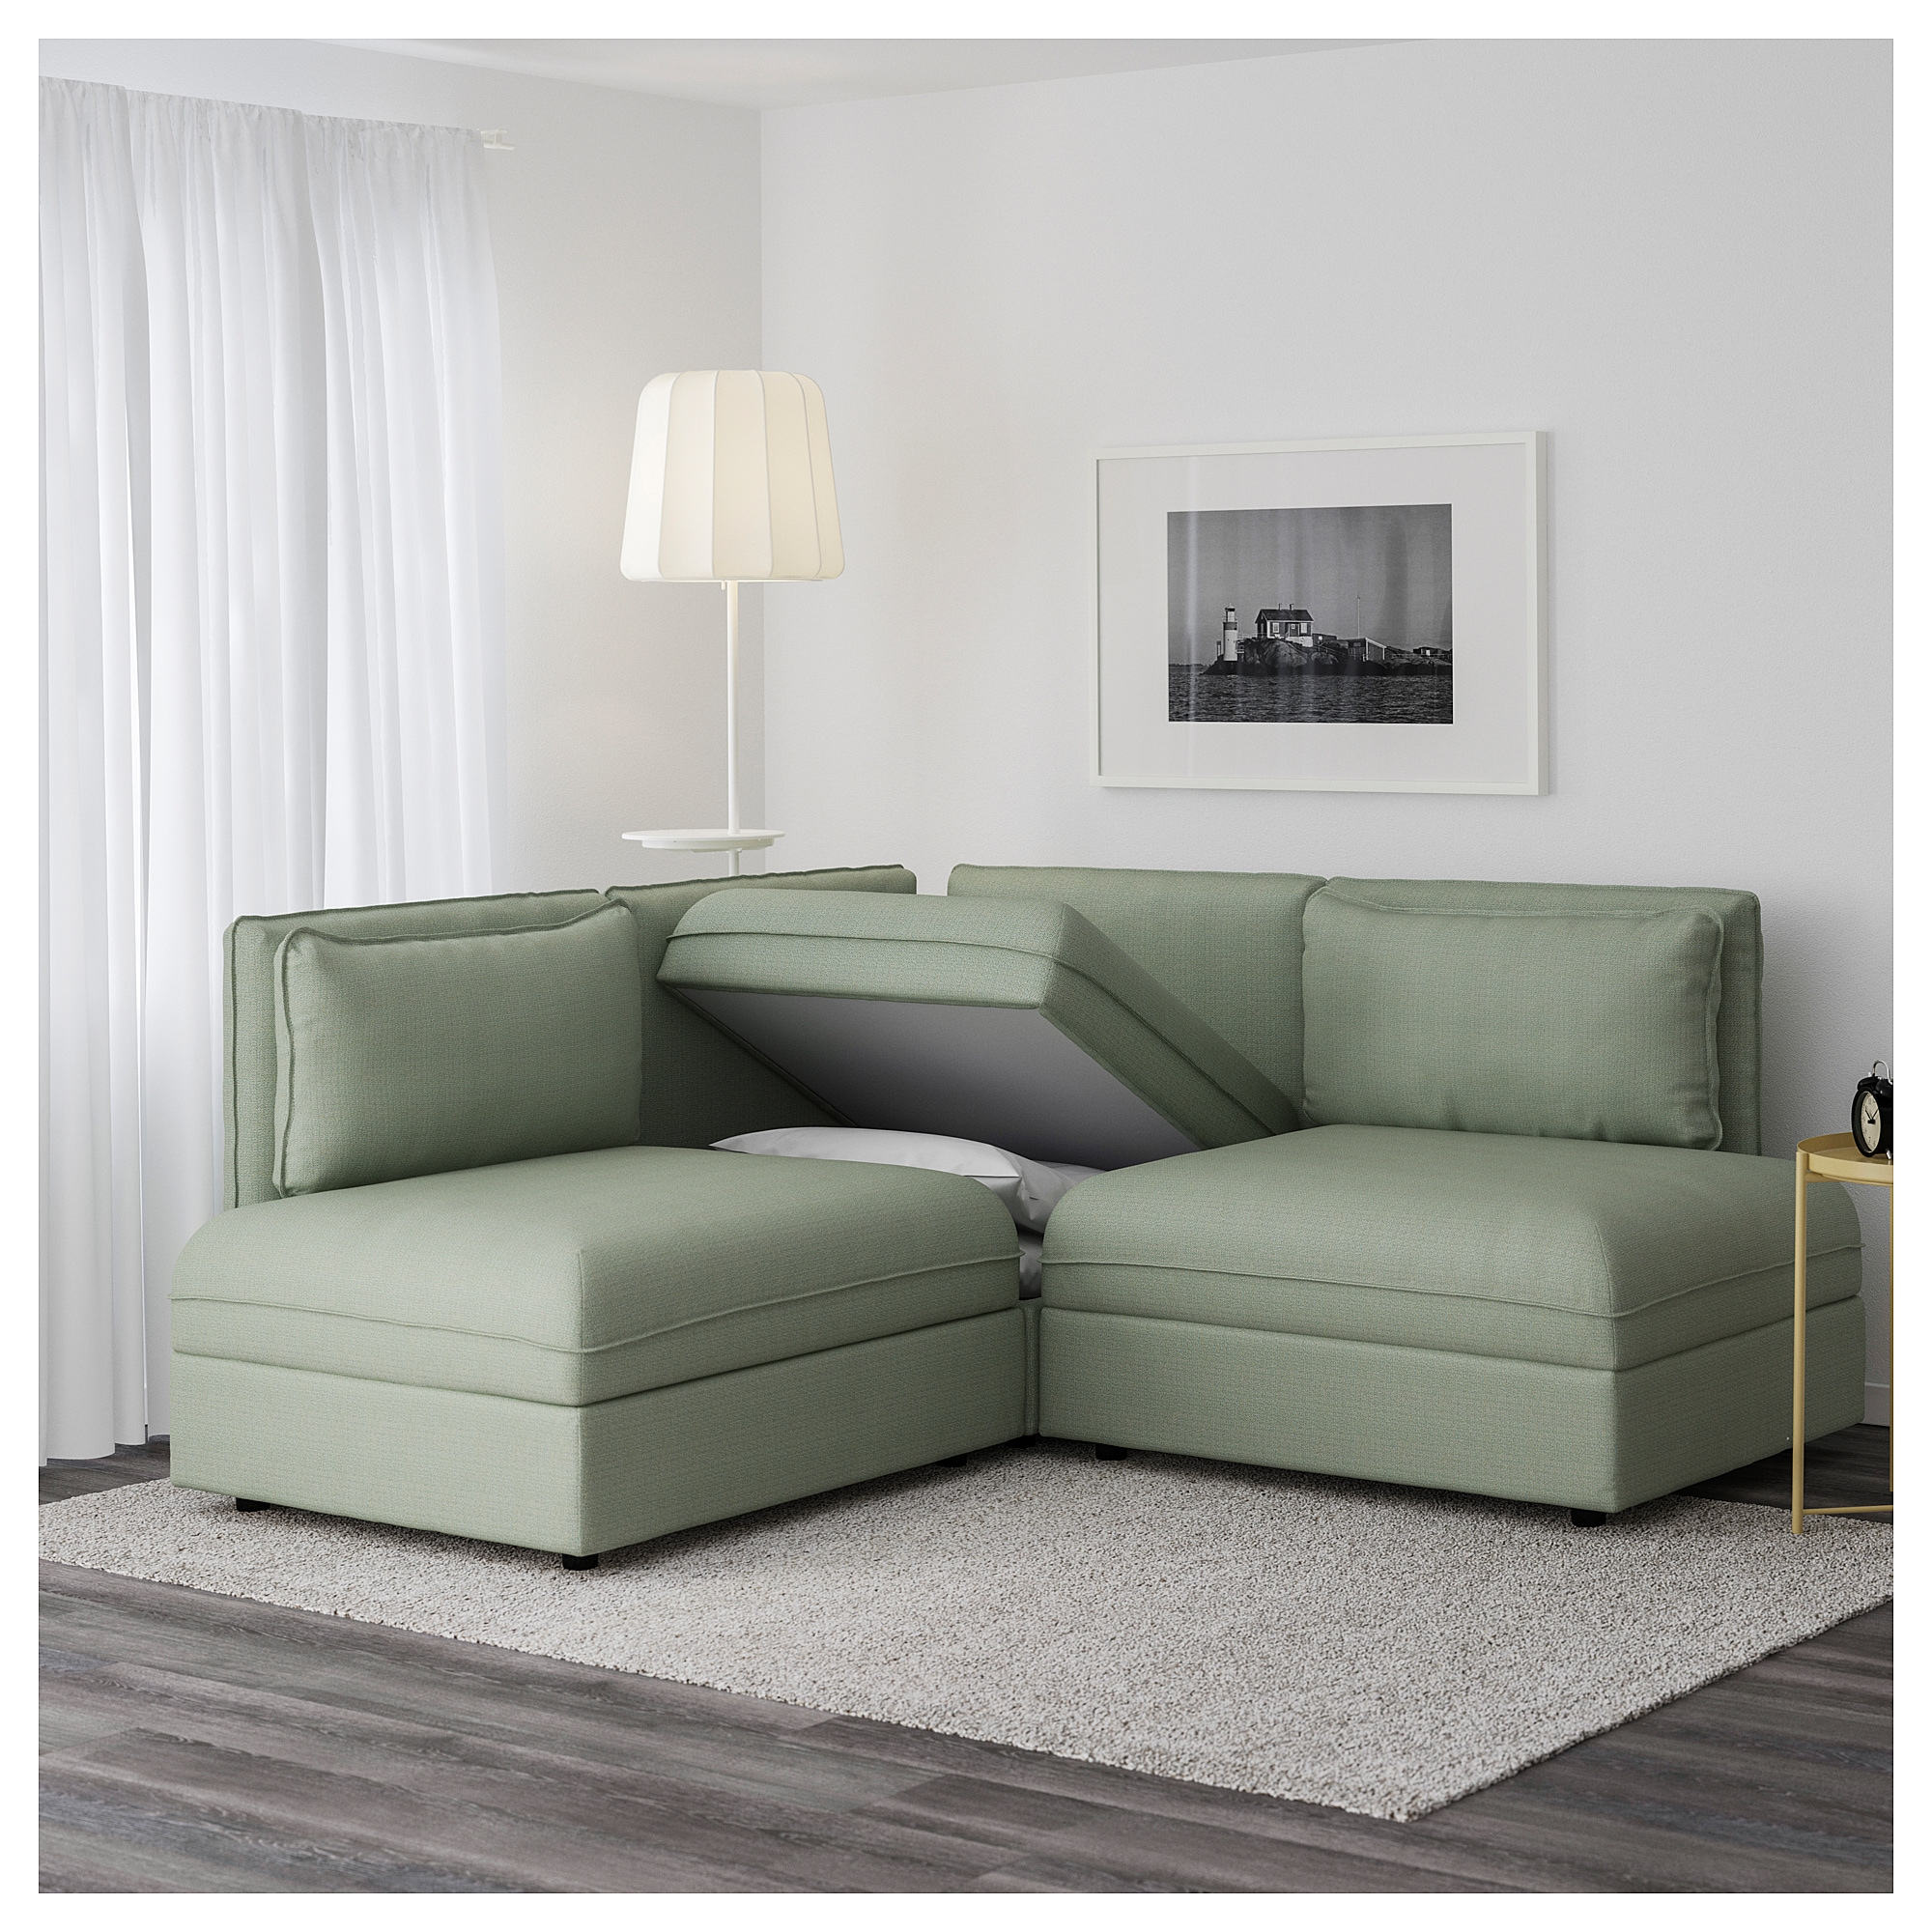 VALLENTUNA Sleeper sectional 2 seat Hillared green IKEA